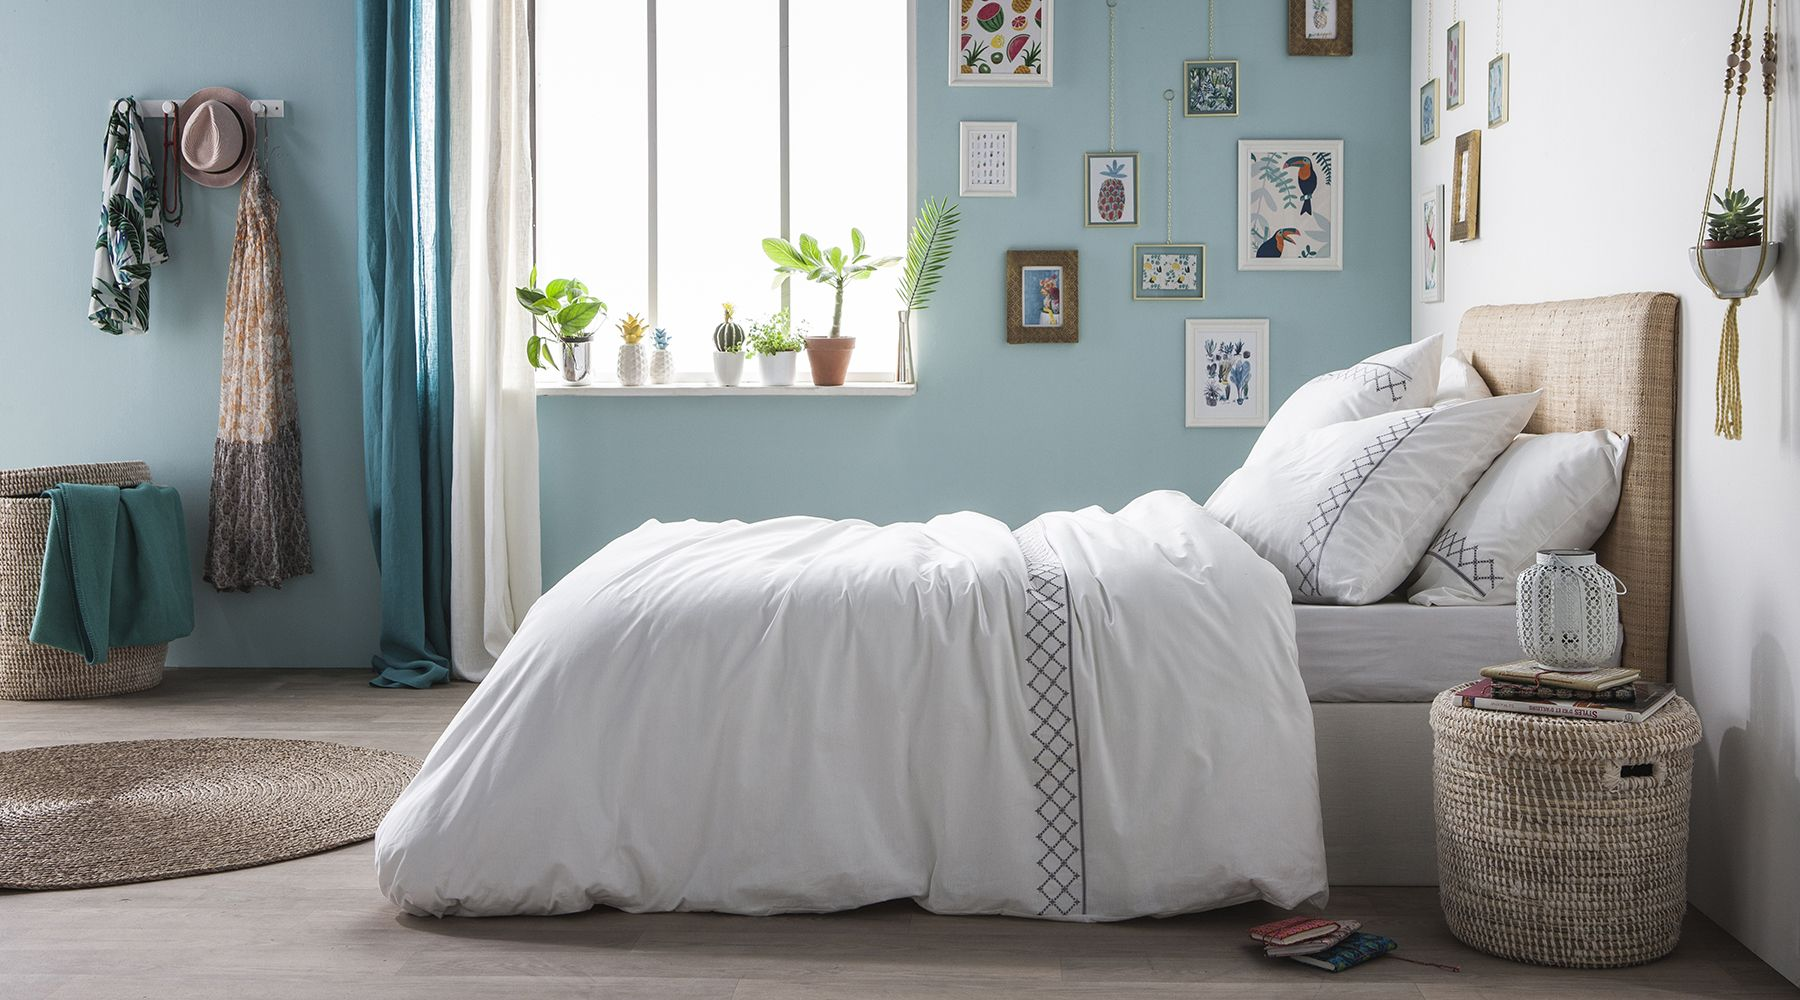 La Chambre Zodio Cosy Cocooning Tendance D Coration Home